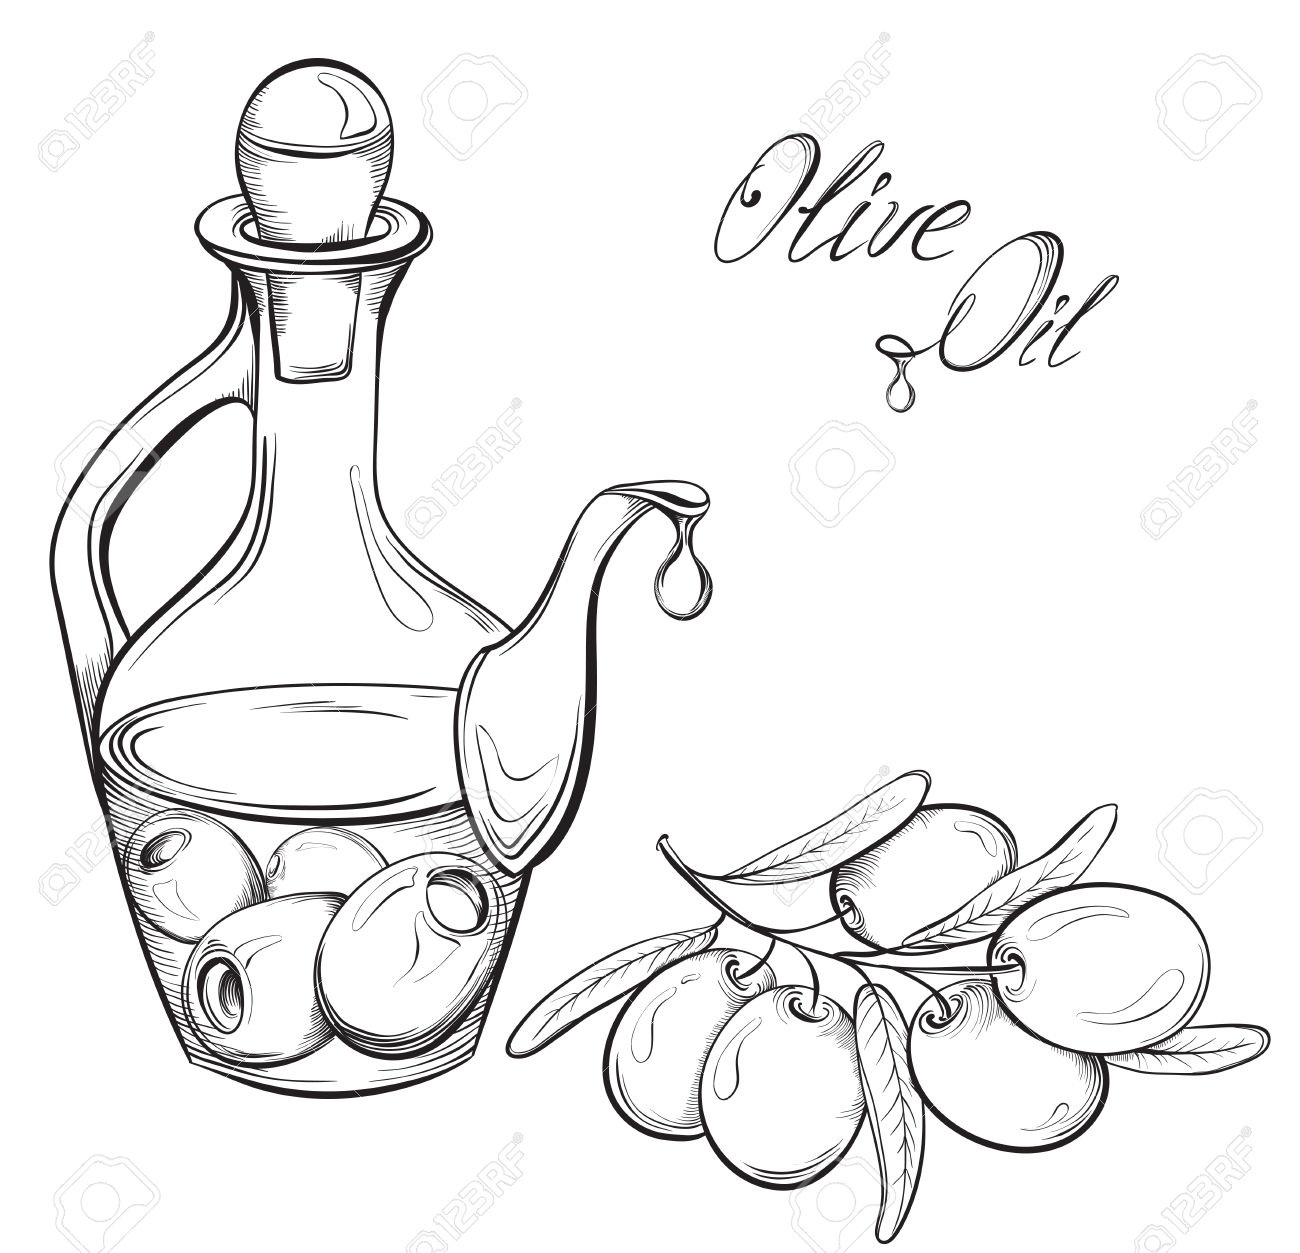 1453 Olive free clipart.